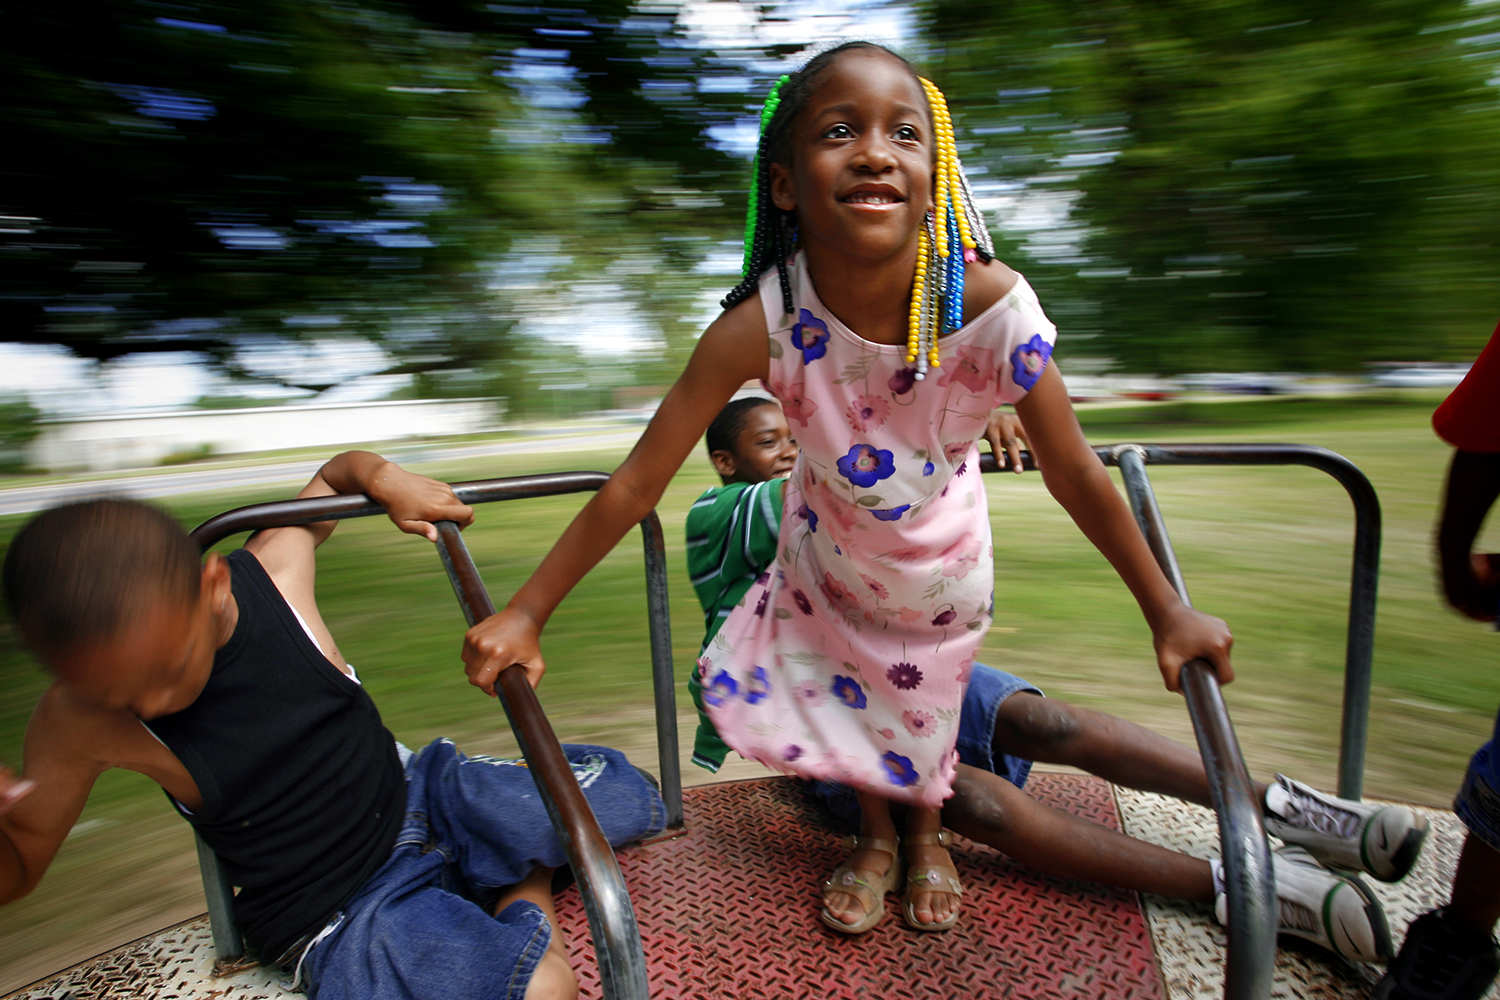 Six-year-old Keyshire Daniels, of Springfield, watches the world spin around her while playing on a merry-go-round at Comer Cox Park during the Juneteenth Celebration, Saturday, June 18, 2006. David Albers/The State Journal-Register